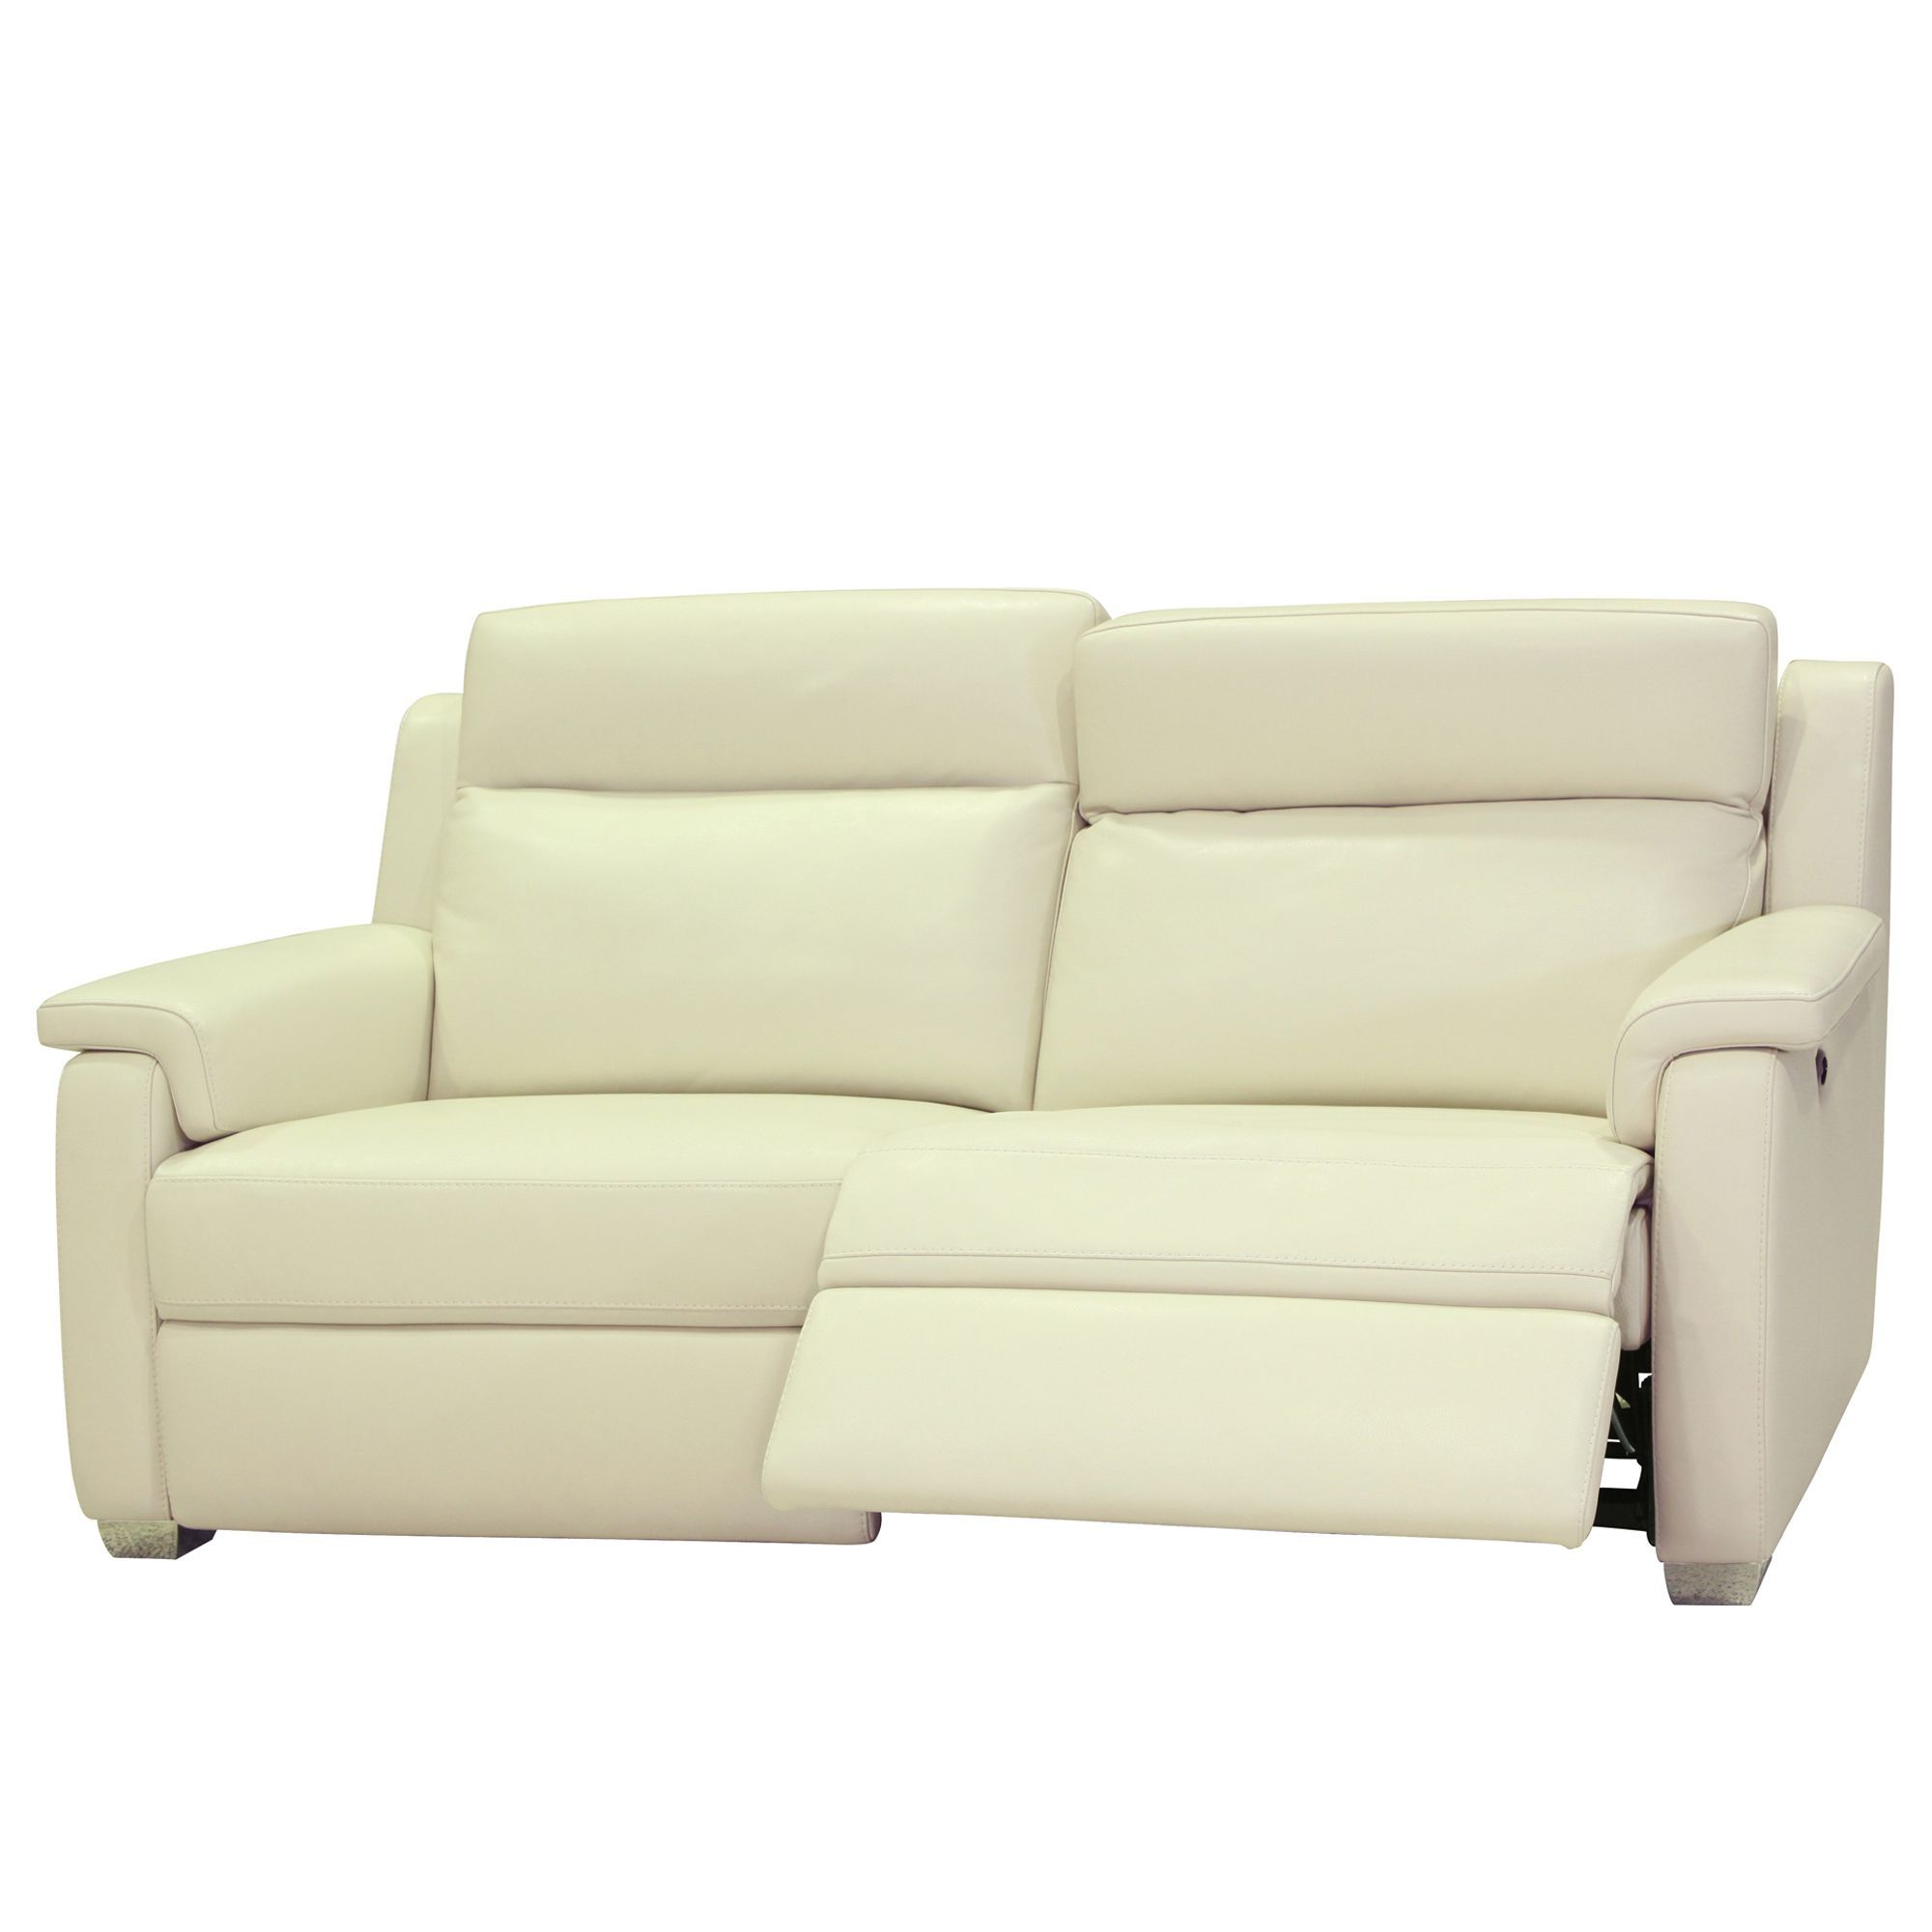 Cookes Collection Victoria 2.5 Seater Electric Recliner Sofa